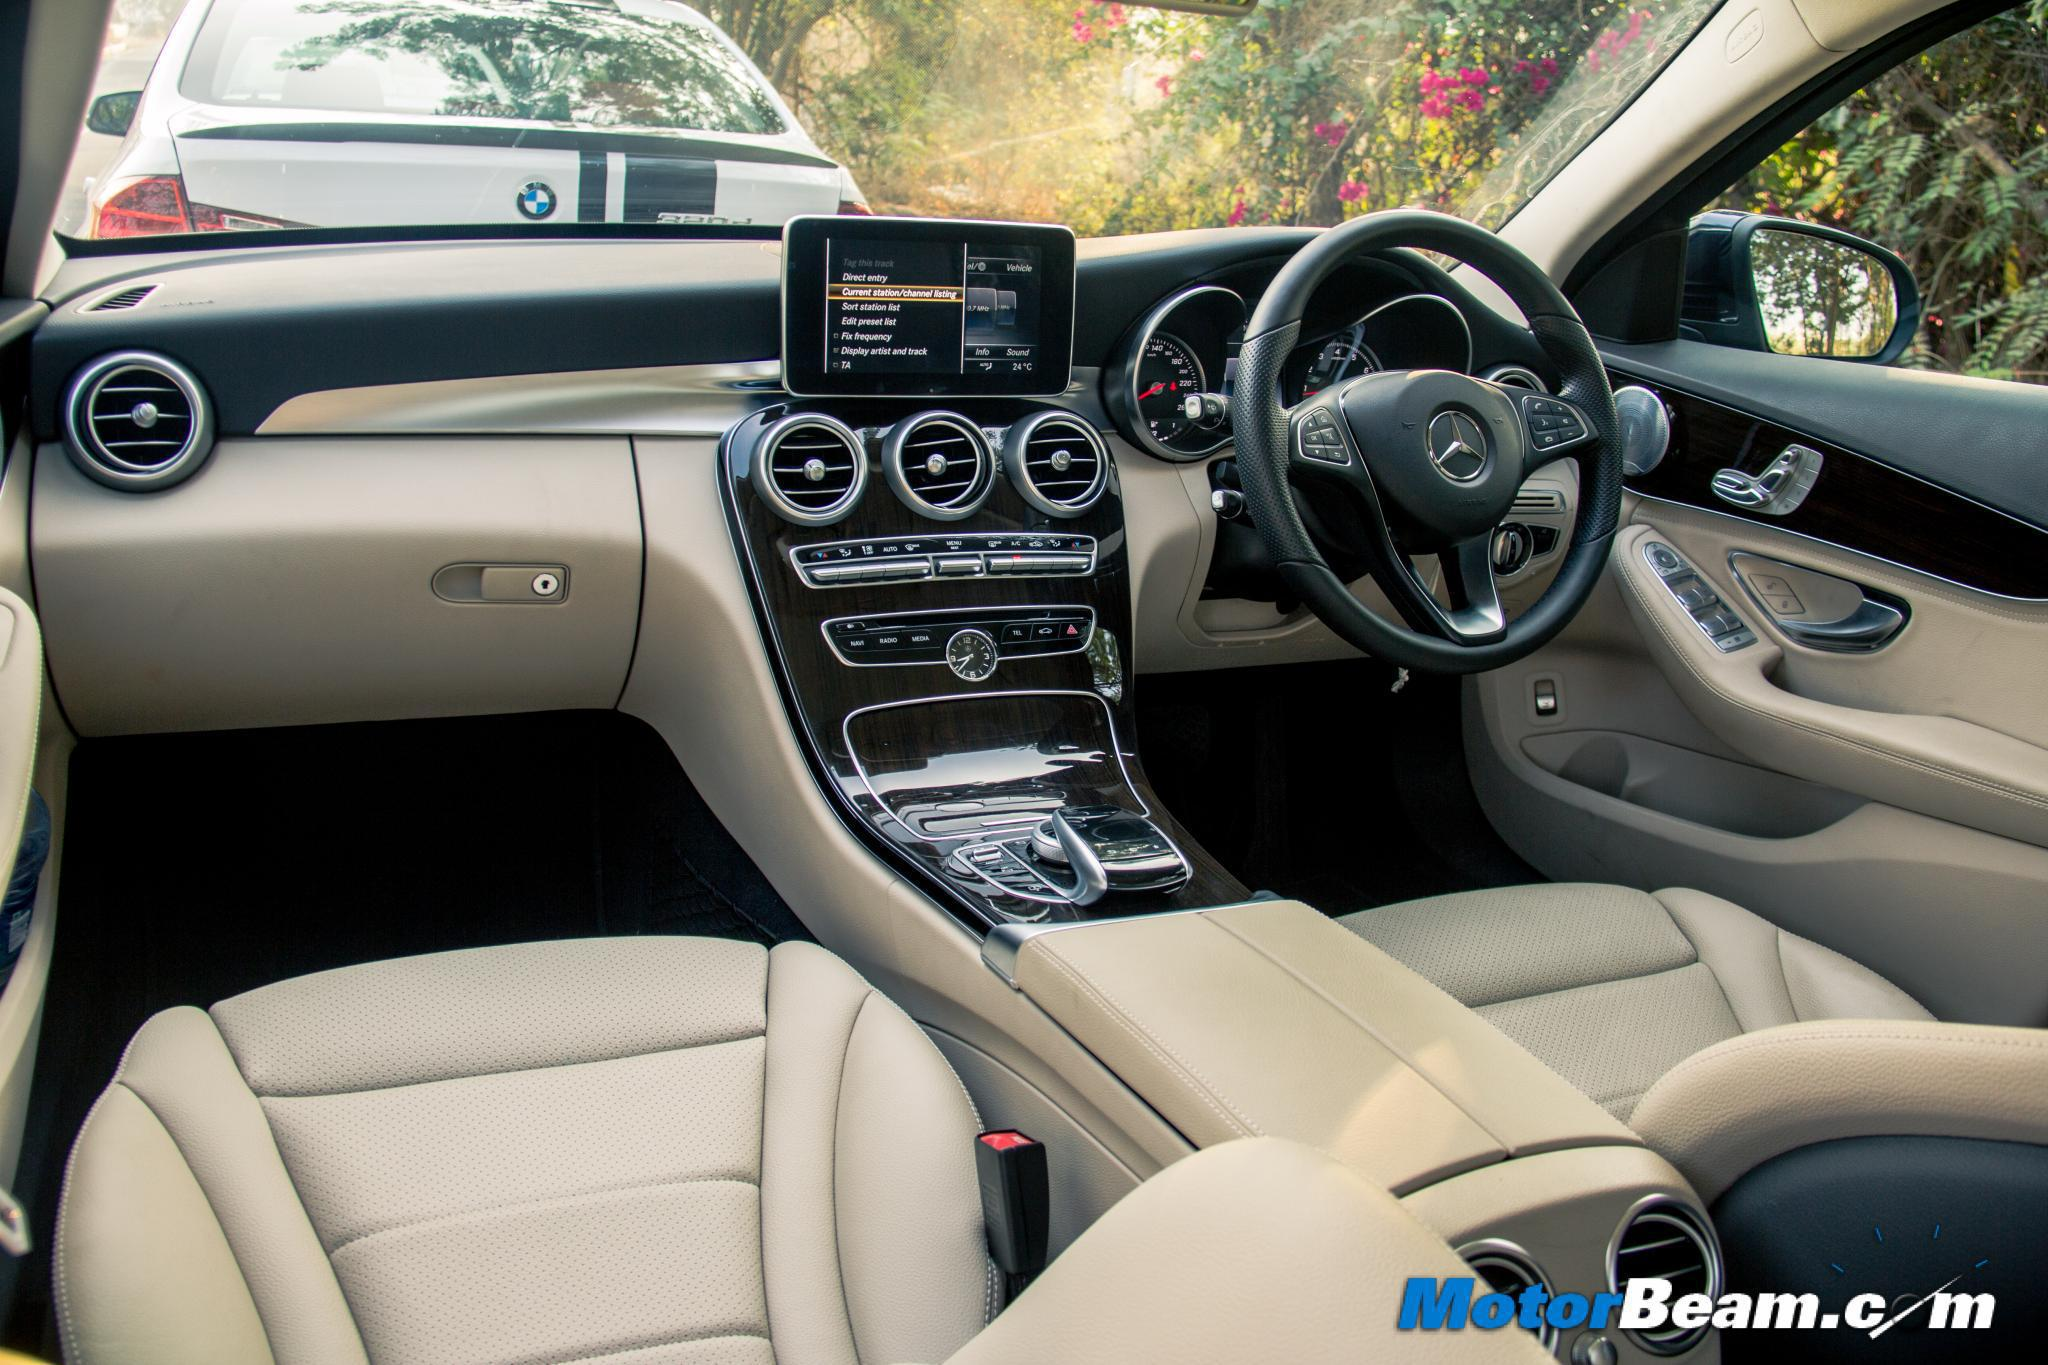 Mercedes C250d Launched In India Priced At Rs 44 36 Lakhs Motorbeam